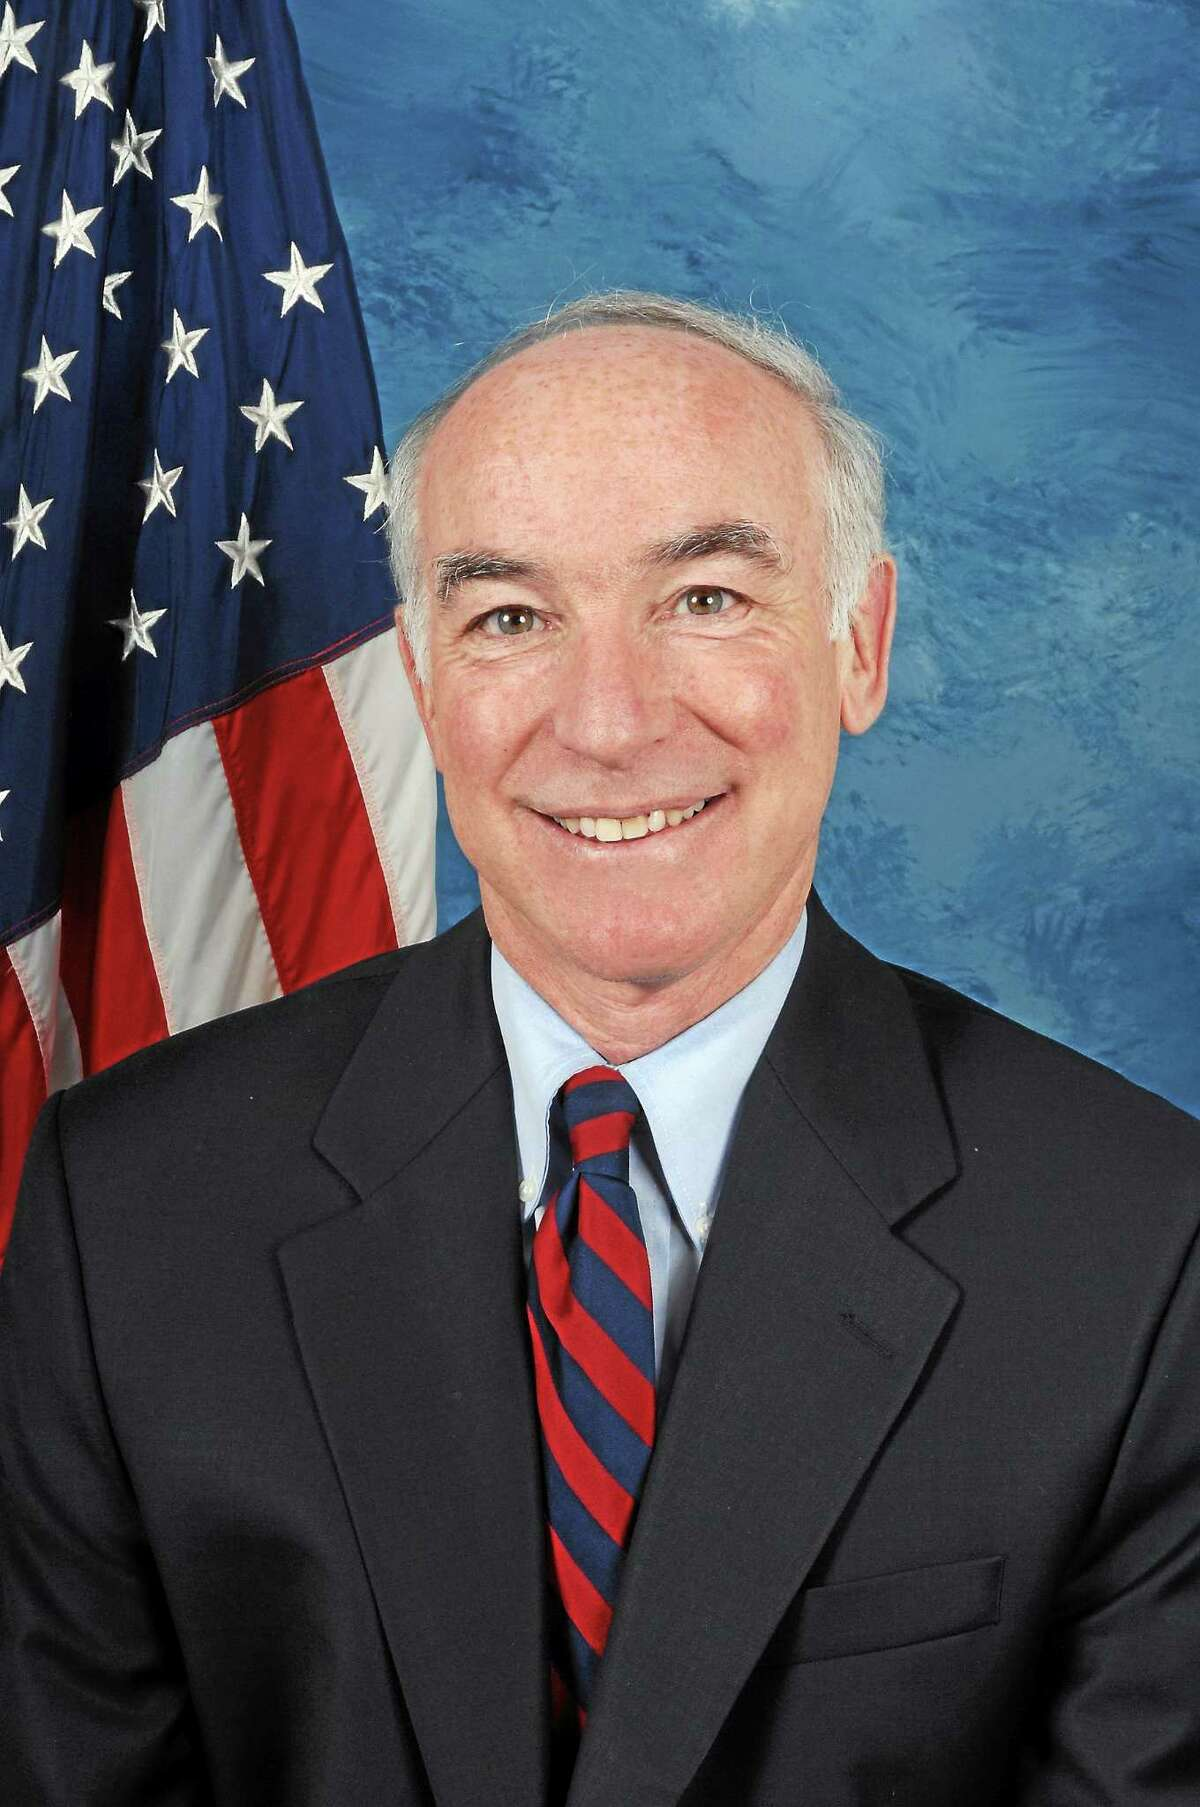 Democratic incumbent U.S. Rep. Joe Courtney